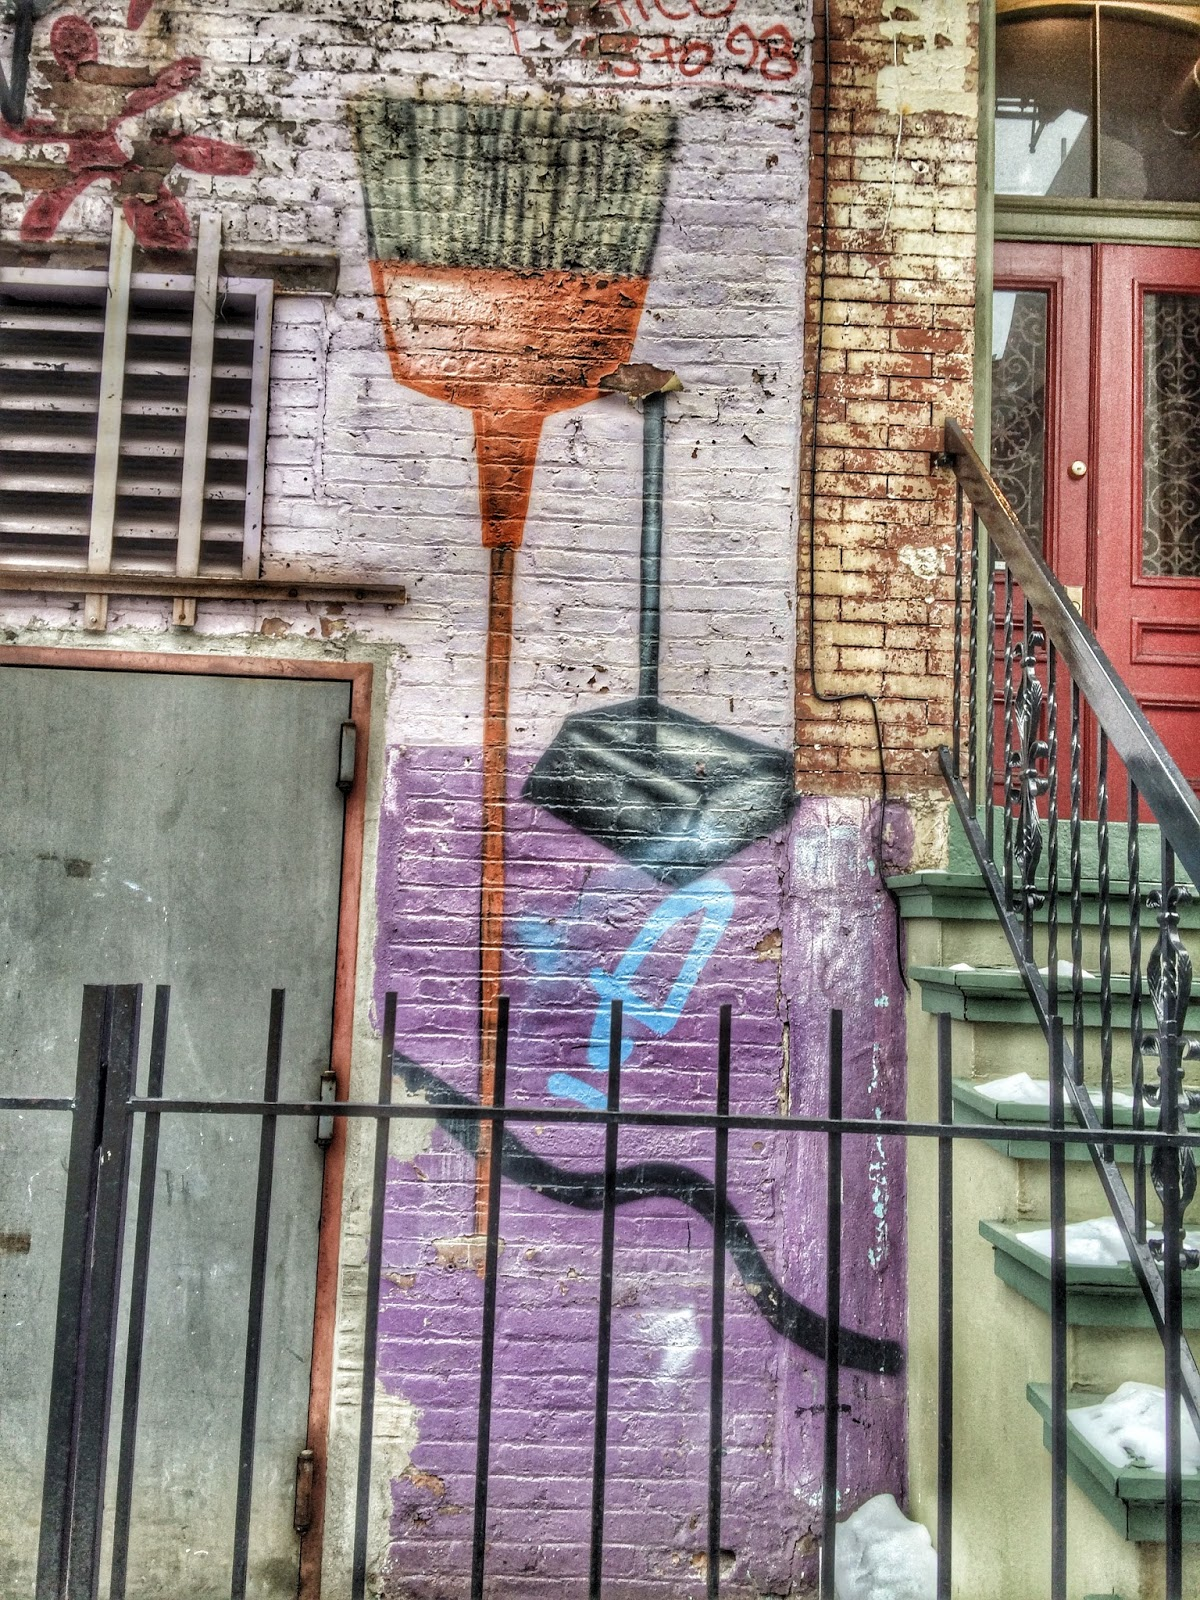 Broomstick #graffitti #graffitimural #nyc #chelsea 2013